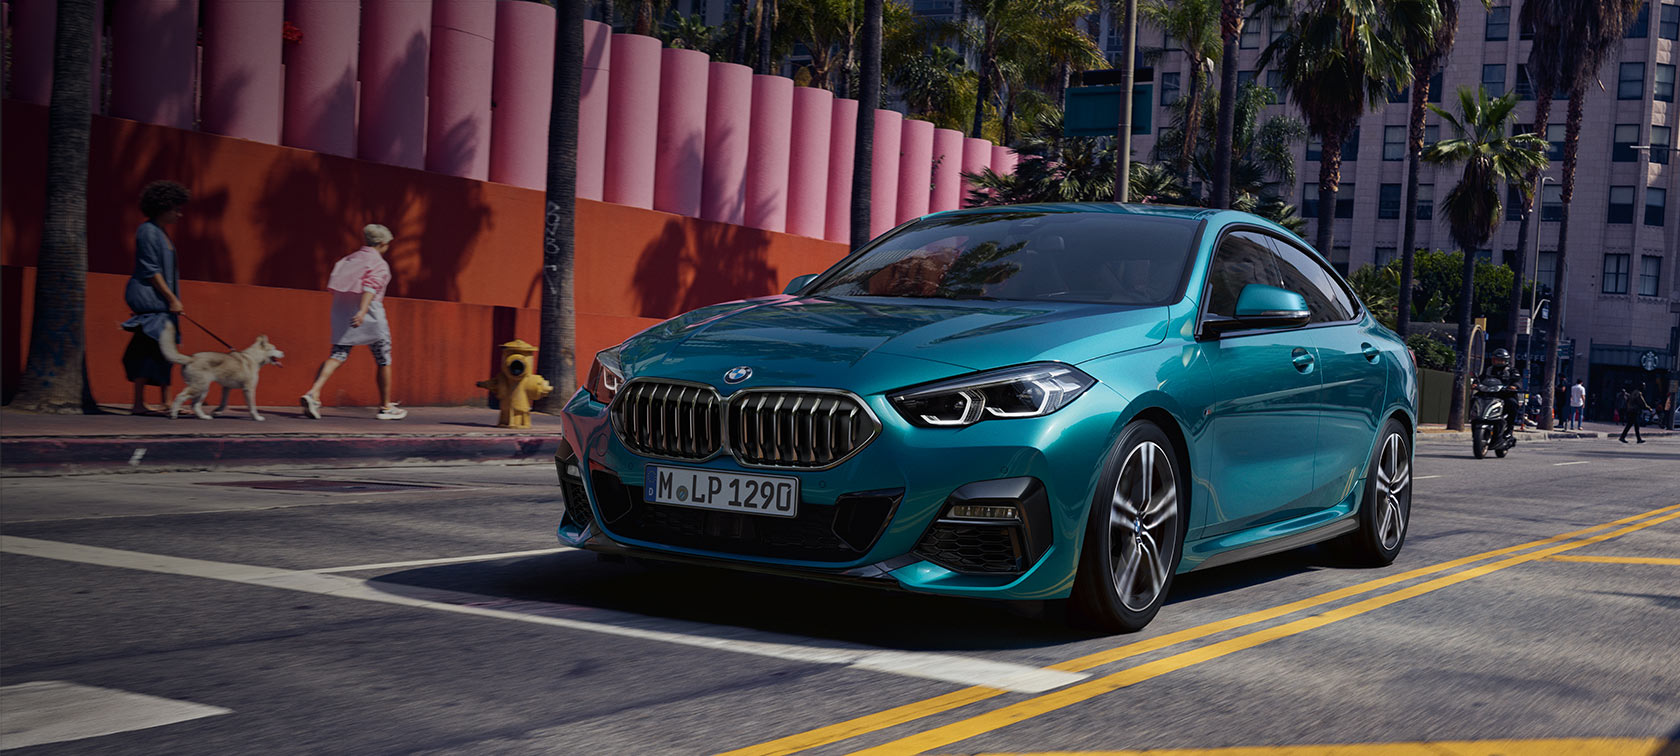 The all-new BMW 2 Series Gran Coupé F44 2020